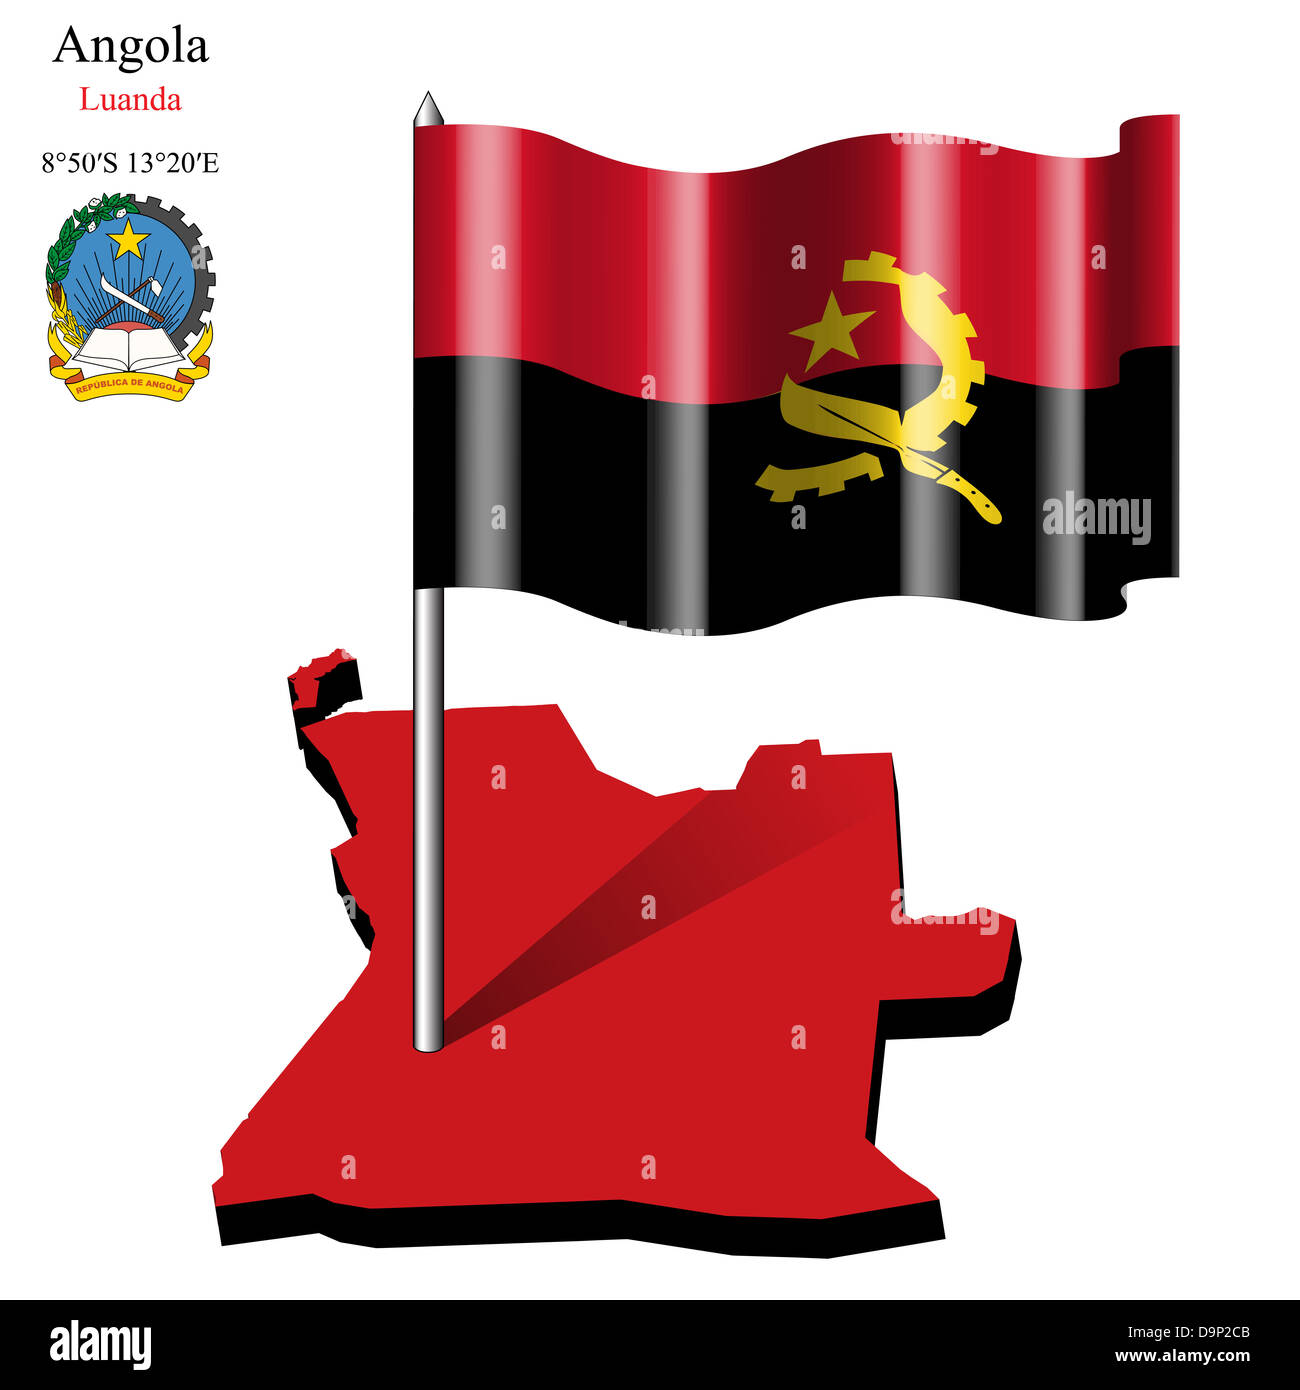 angola wavy flag over map against white background, abstract vector art illustration, image contains transparency - Stock Image